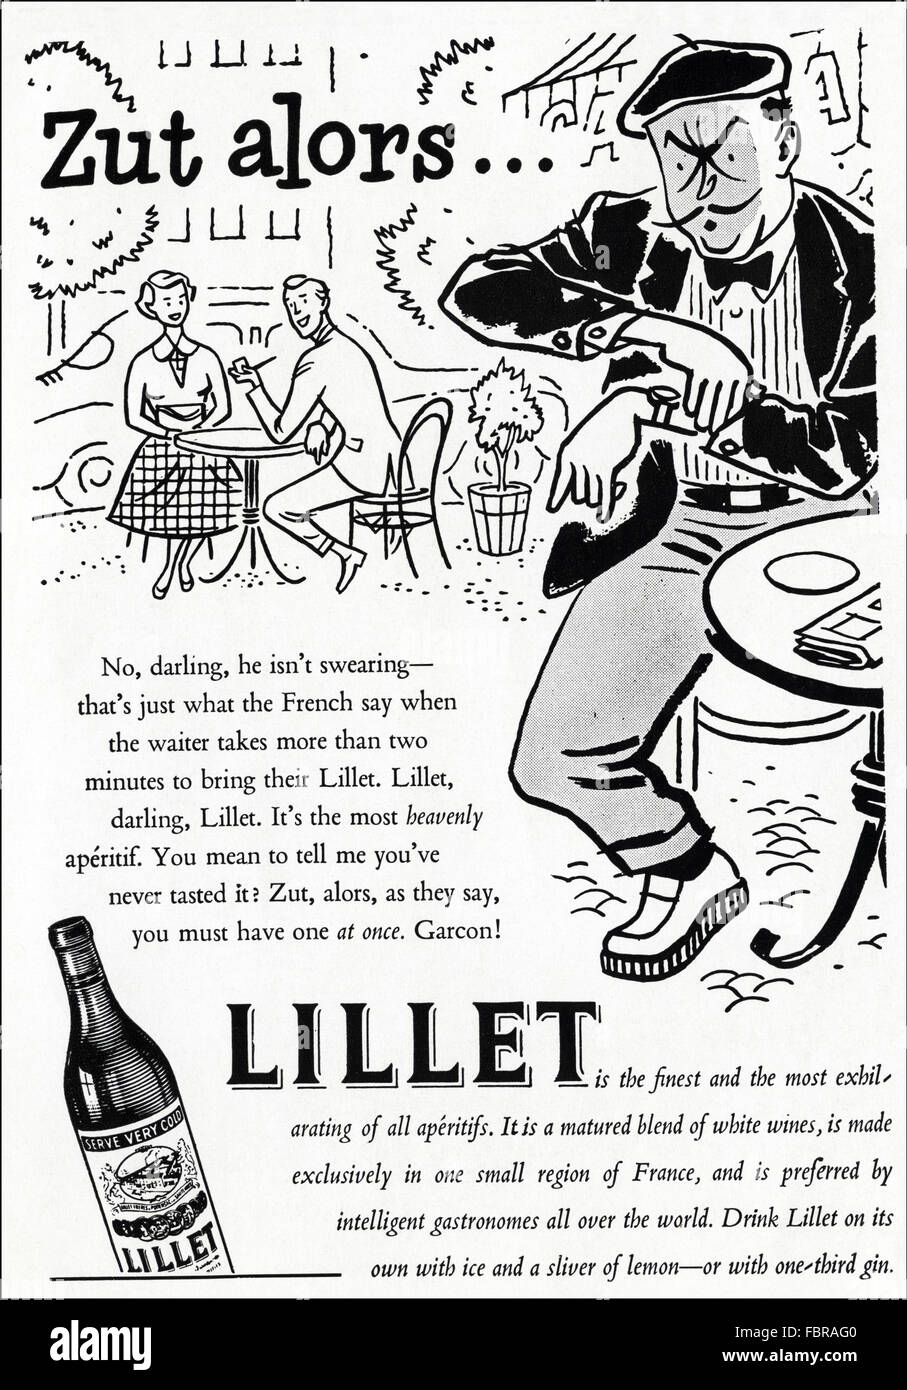 Original vintage advert from 1950s. Advertisement from 1954 advertising Lillet aperitif. - Stock Image